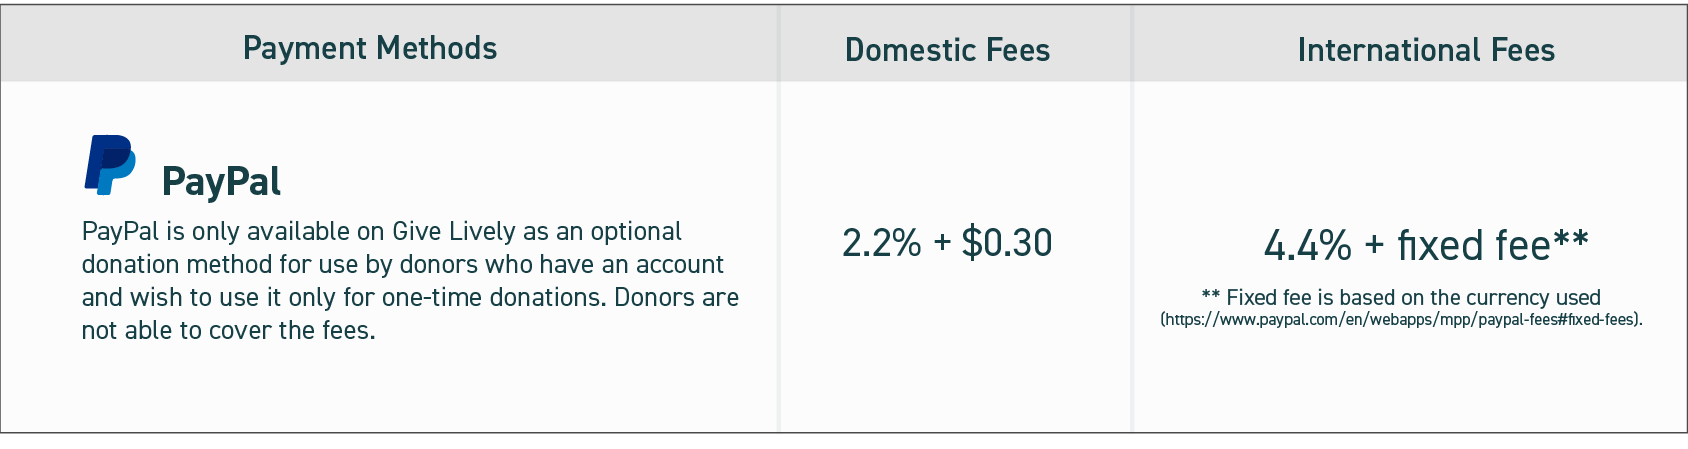 Paypal fees. Paypal charges 2.2% + $.30 for domestic transactions. For international transactions, PayPal charges 4.4% + a variable fixed fee based on currency.